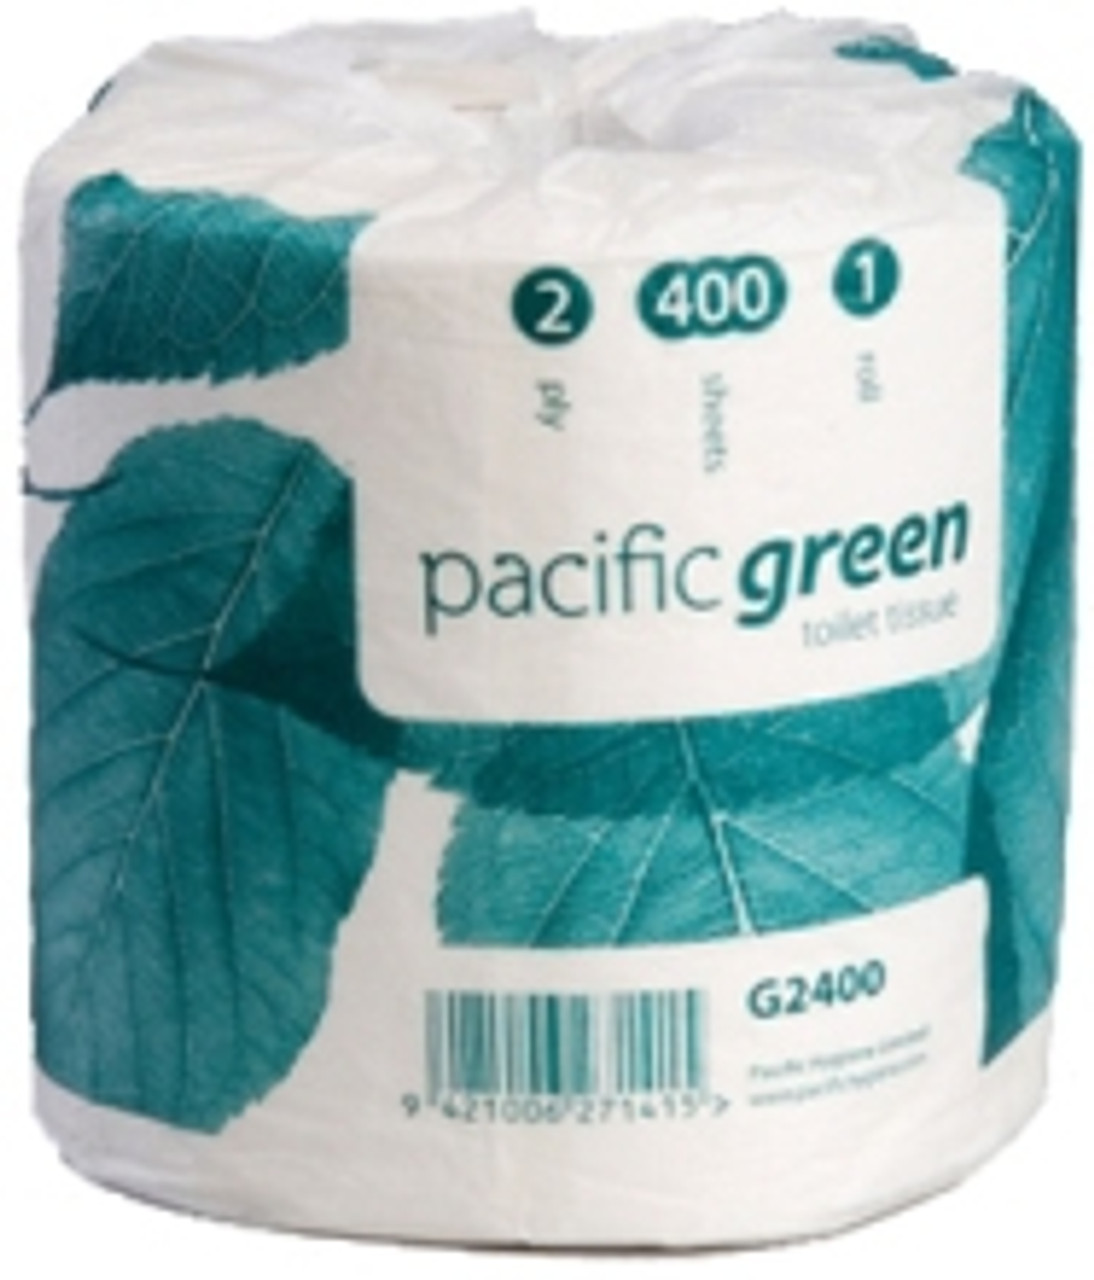 PACIFIC GREEN 100% RECYCLED TOILET TISSUE  CARTON 48